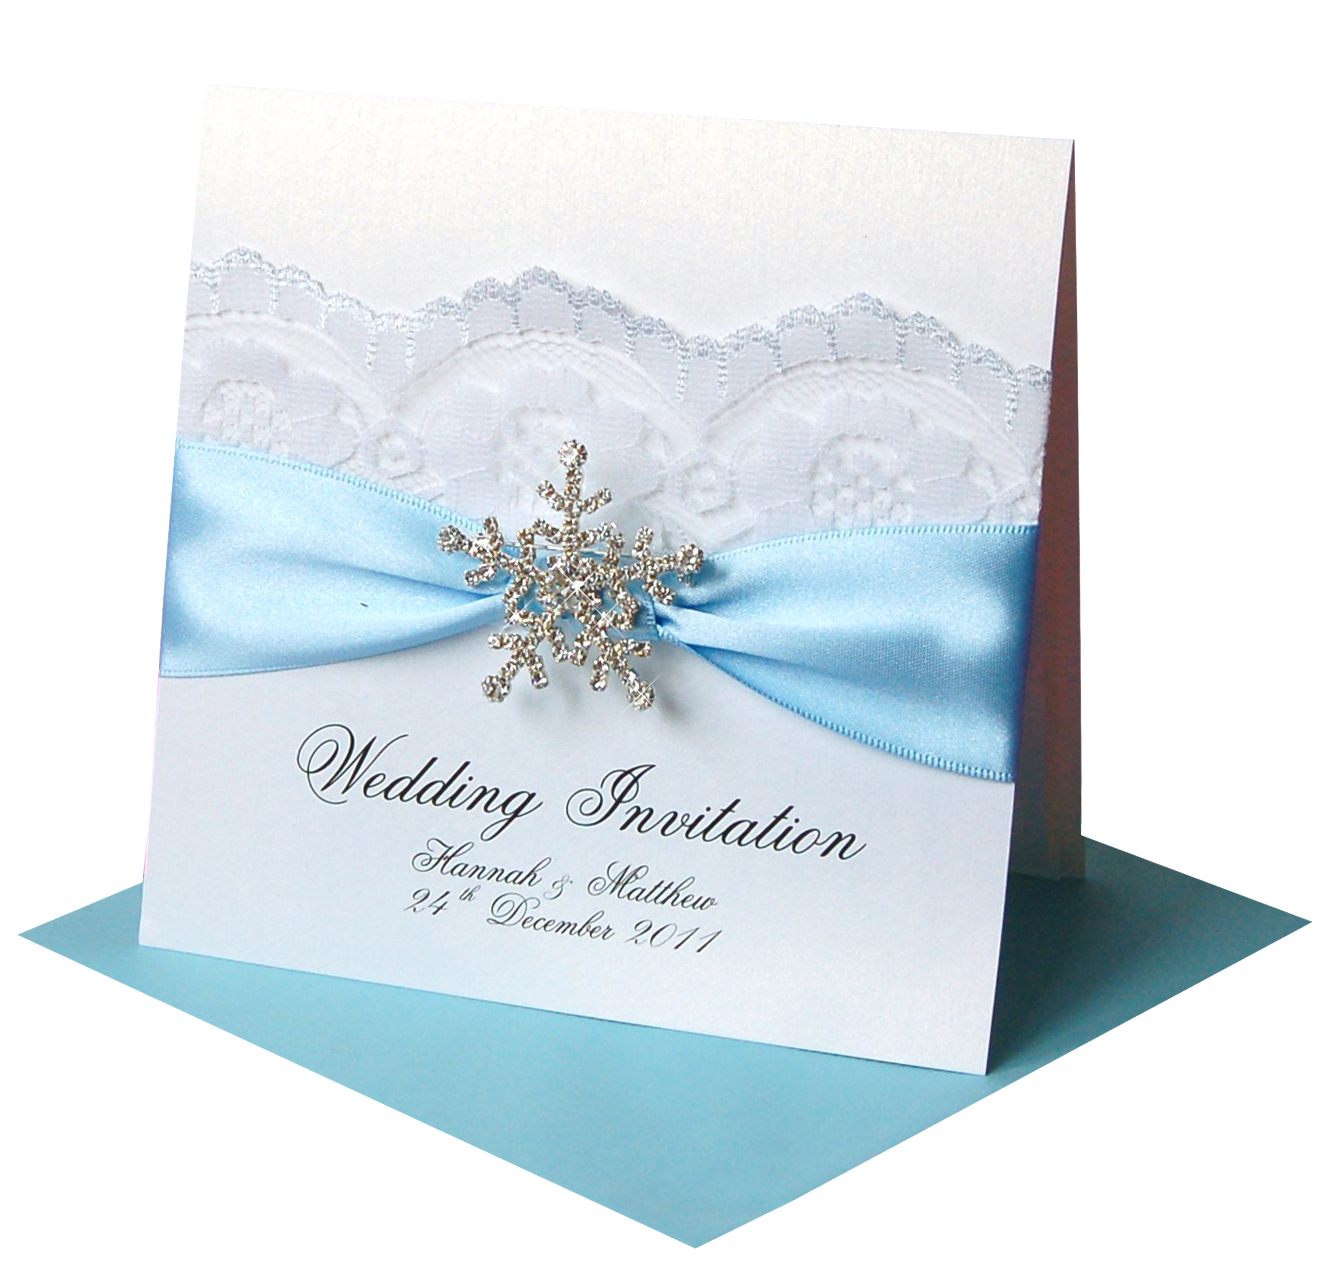 Winter Wedding Invitations – 'Snowflake' Crystal